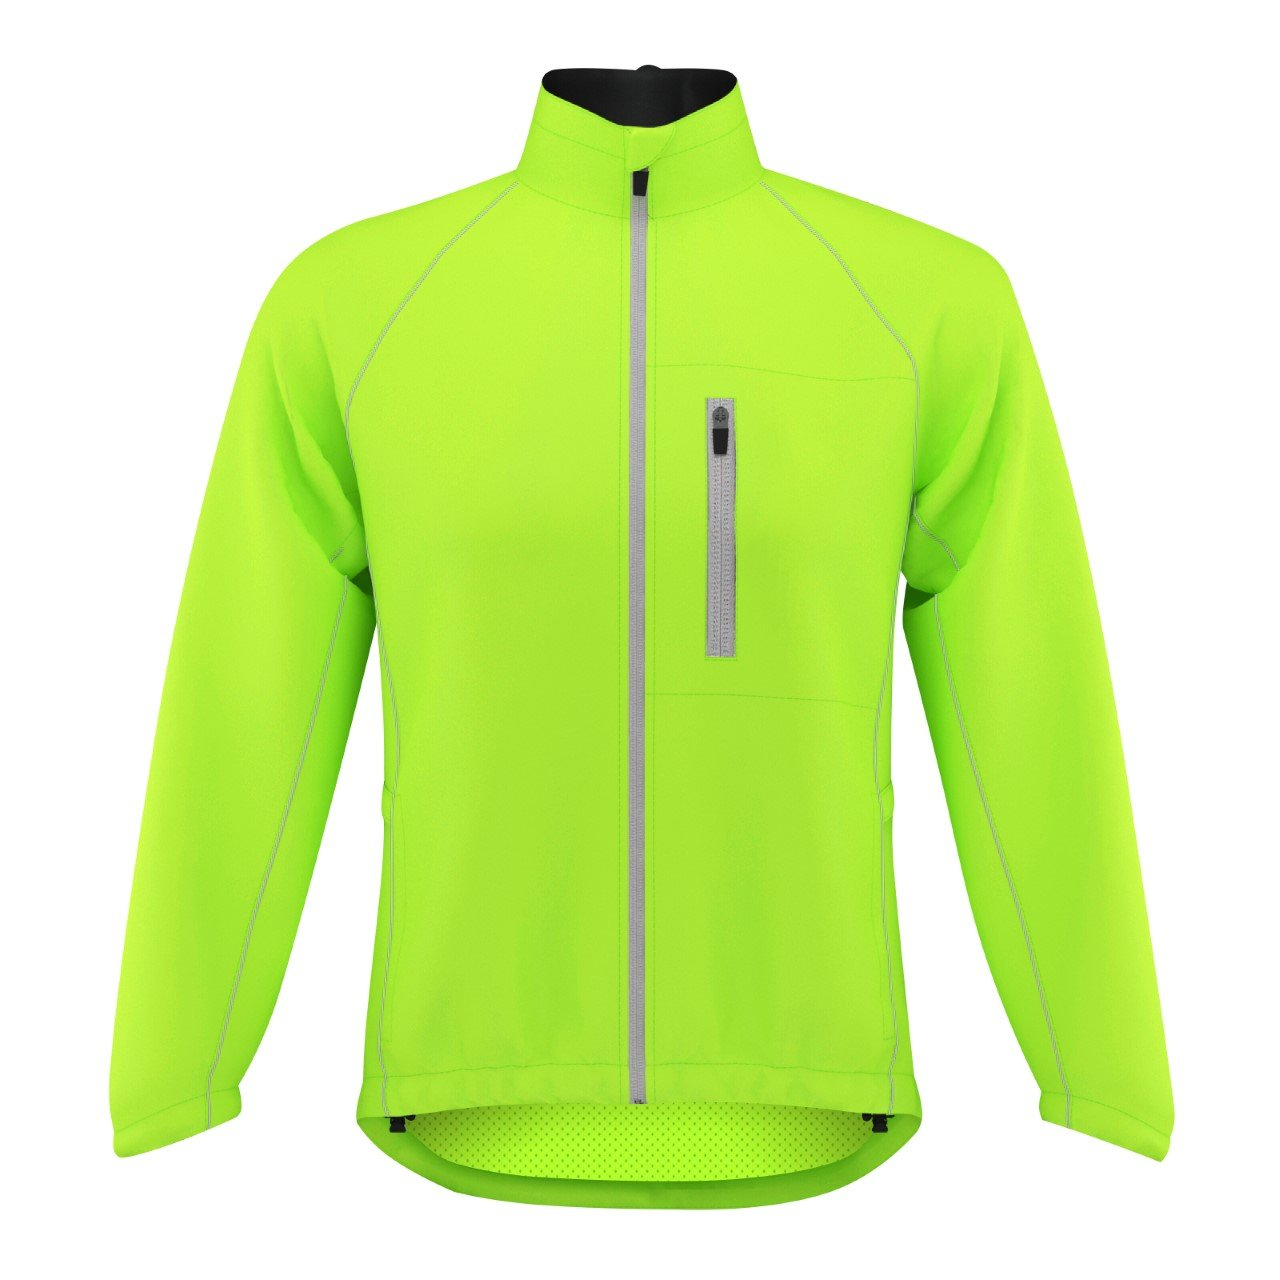 ProAthletica Ladies Cycling /Running Rain Jacket High Visibility Breathable Wind/ Waterproof ProAthletica Sports Ltd